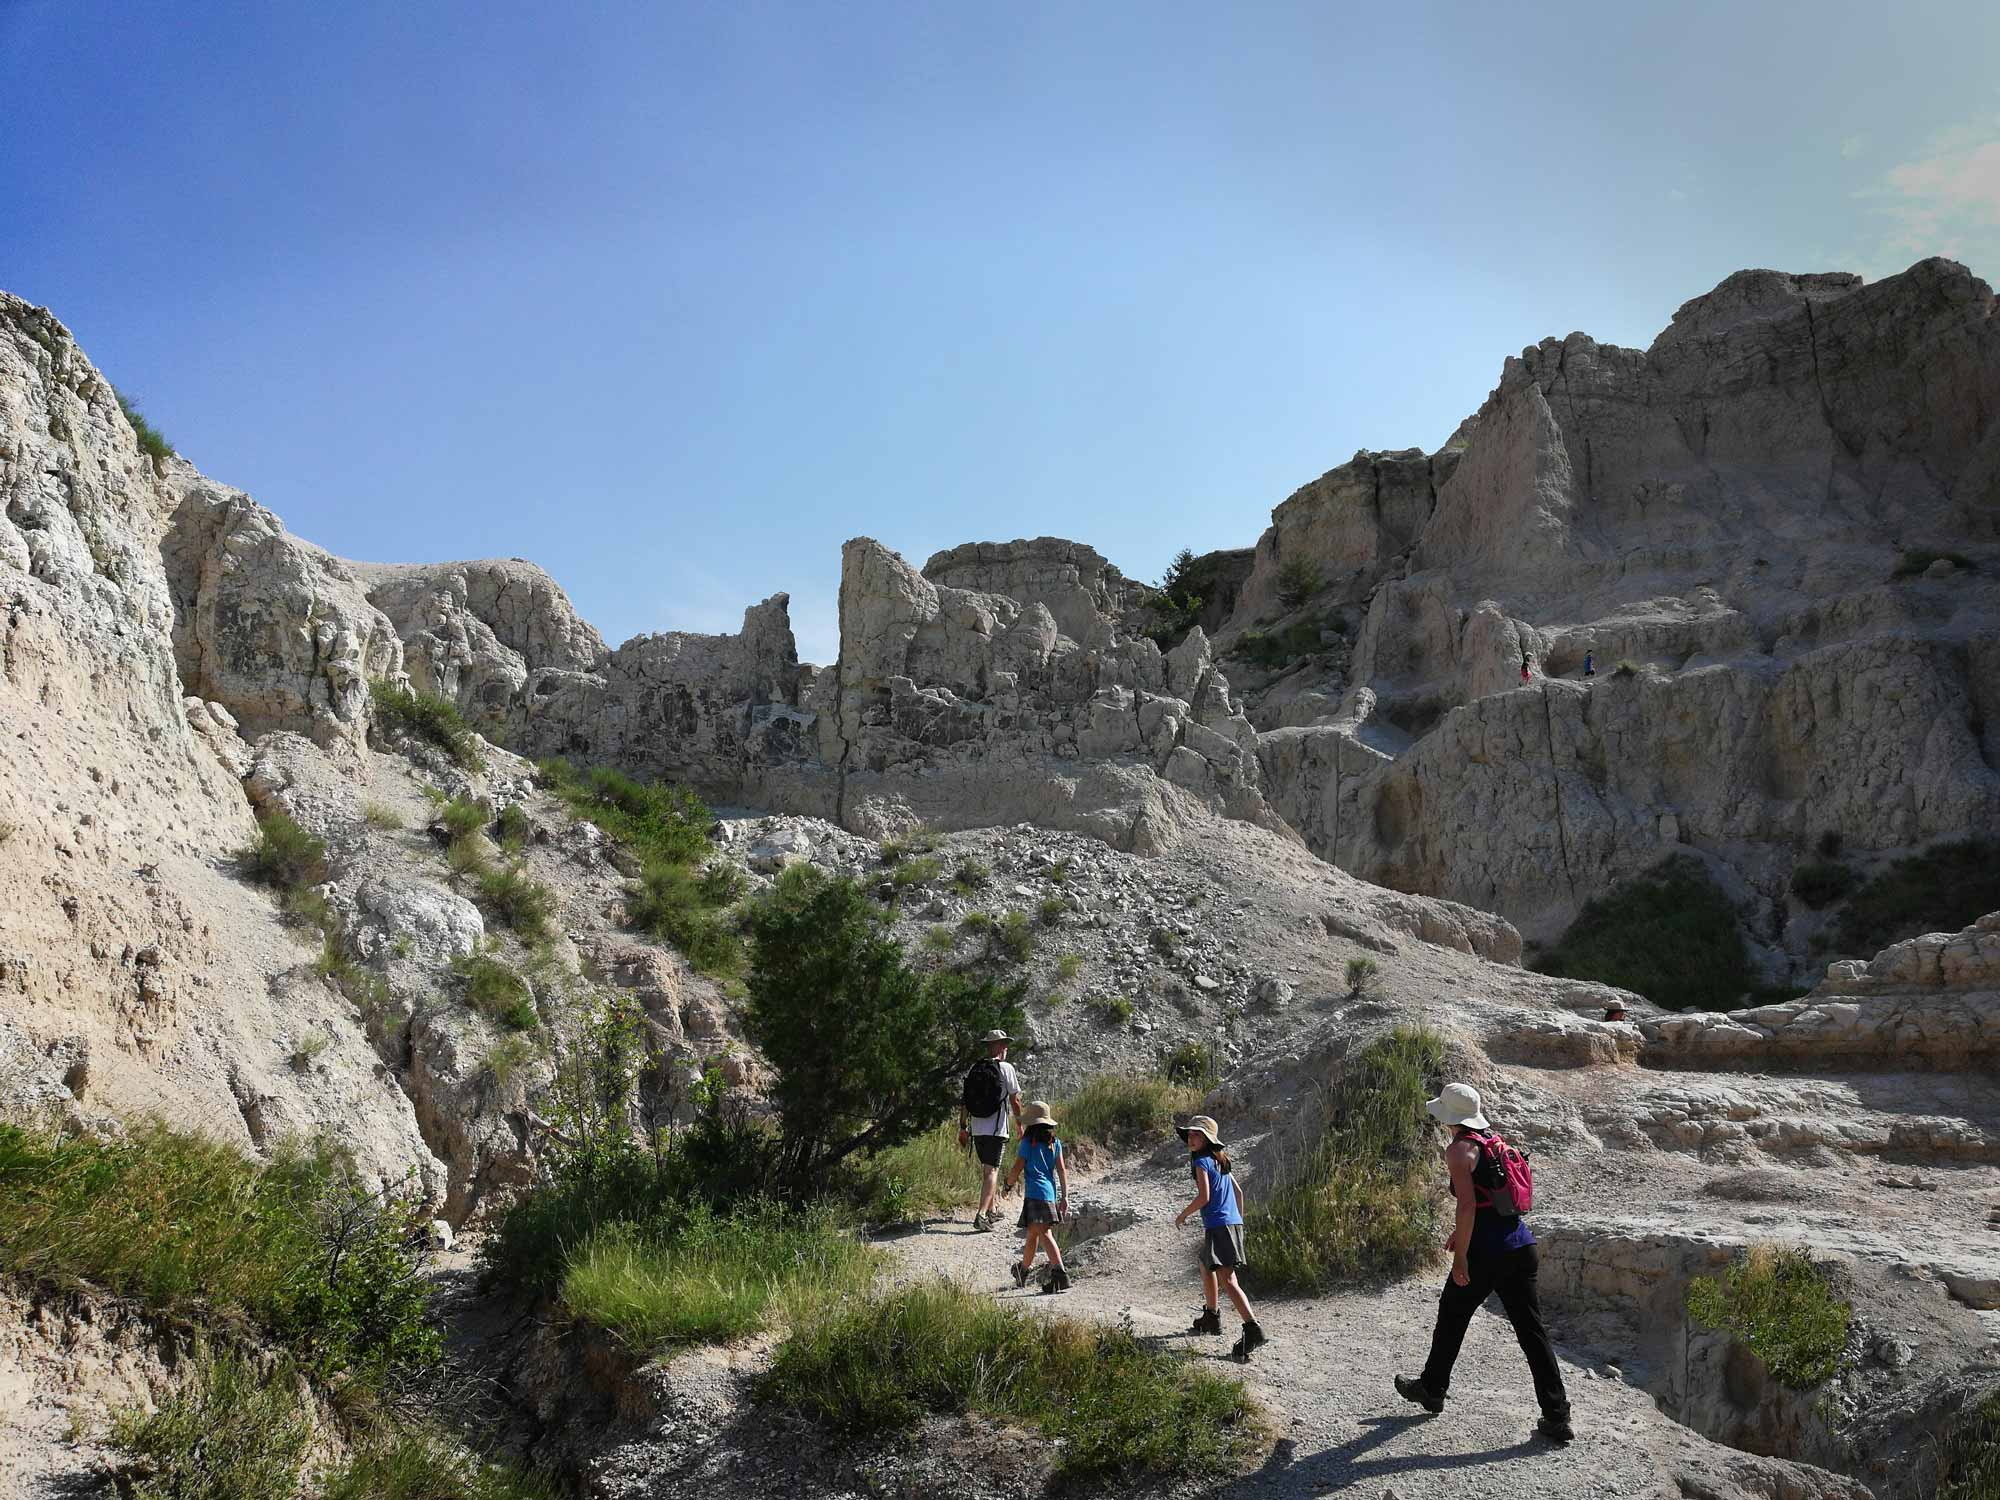 Family hiking the Notch Trail in Badlands National Park, South Dakota